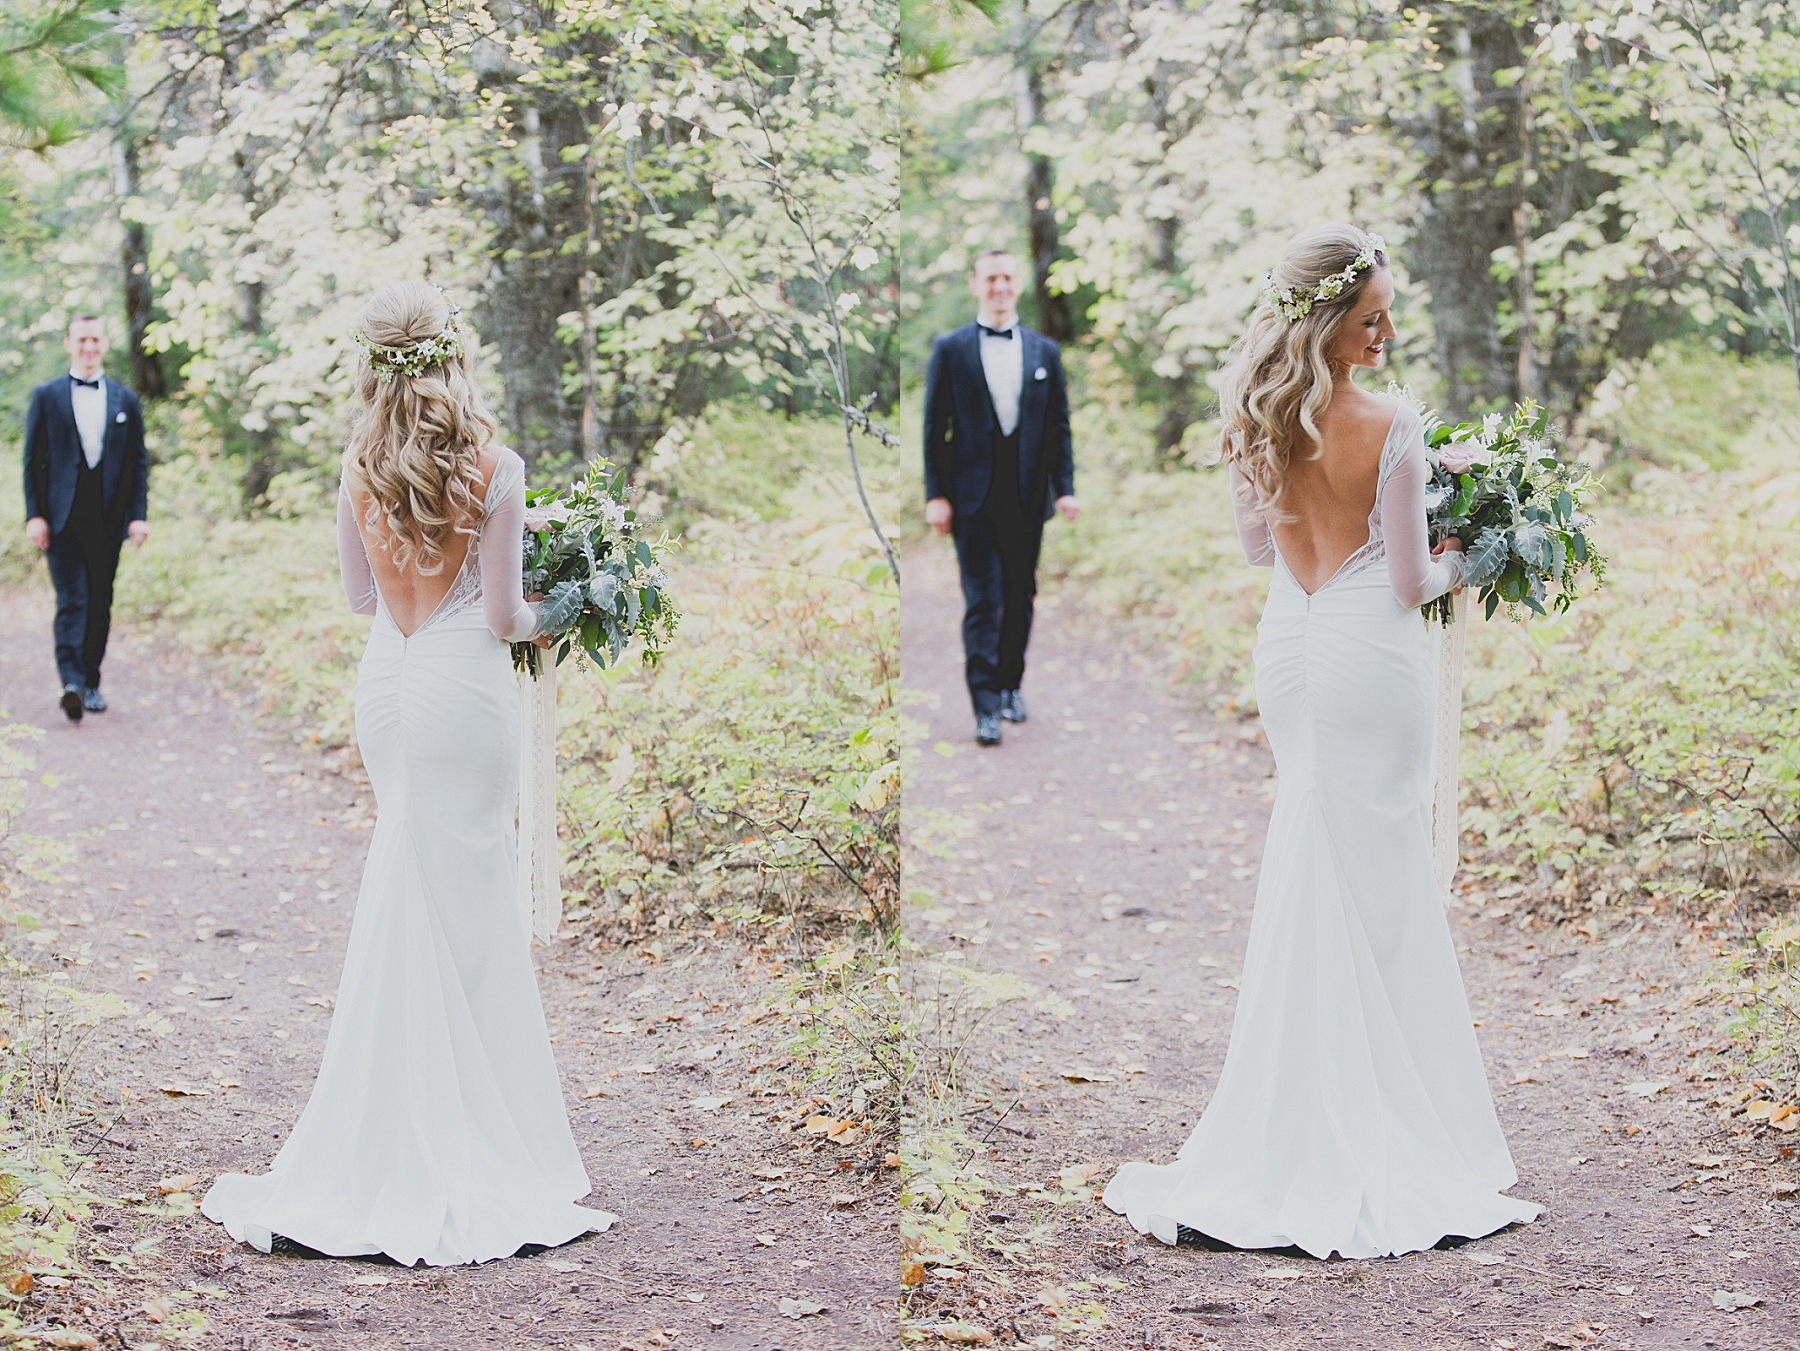 Jennifer_Mooney_Photo_glacier_park_wedding_Beargrass_florals_fall_wedding_elegant_montana_destination_velvet_bride_katie_may_dress_verona_gown_00028.jpg